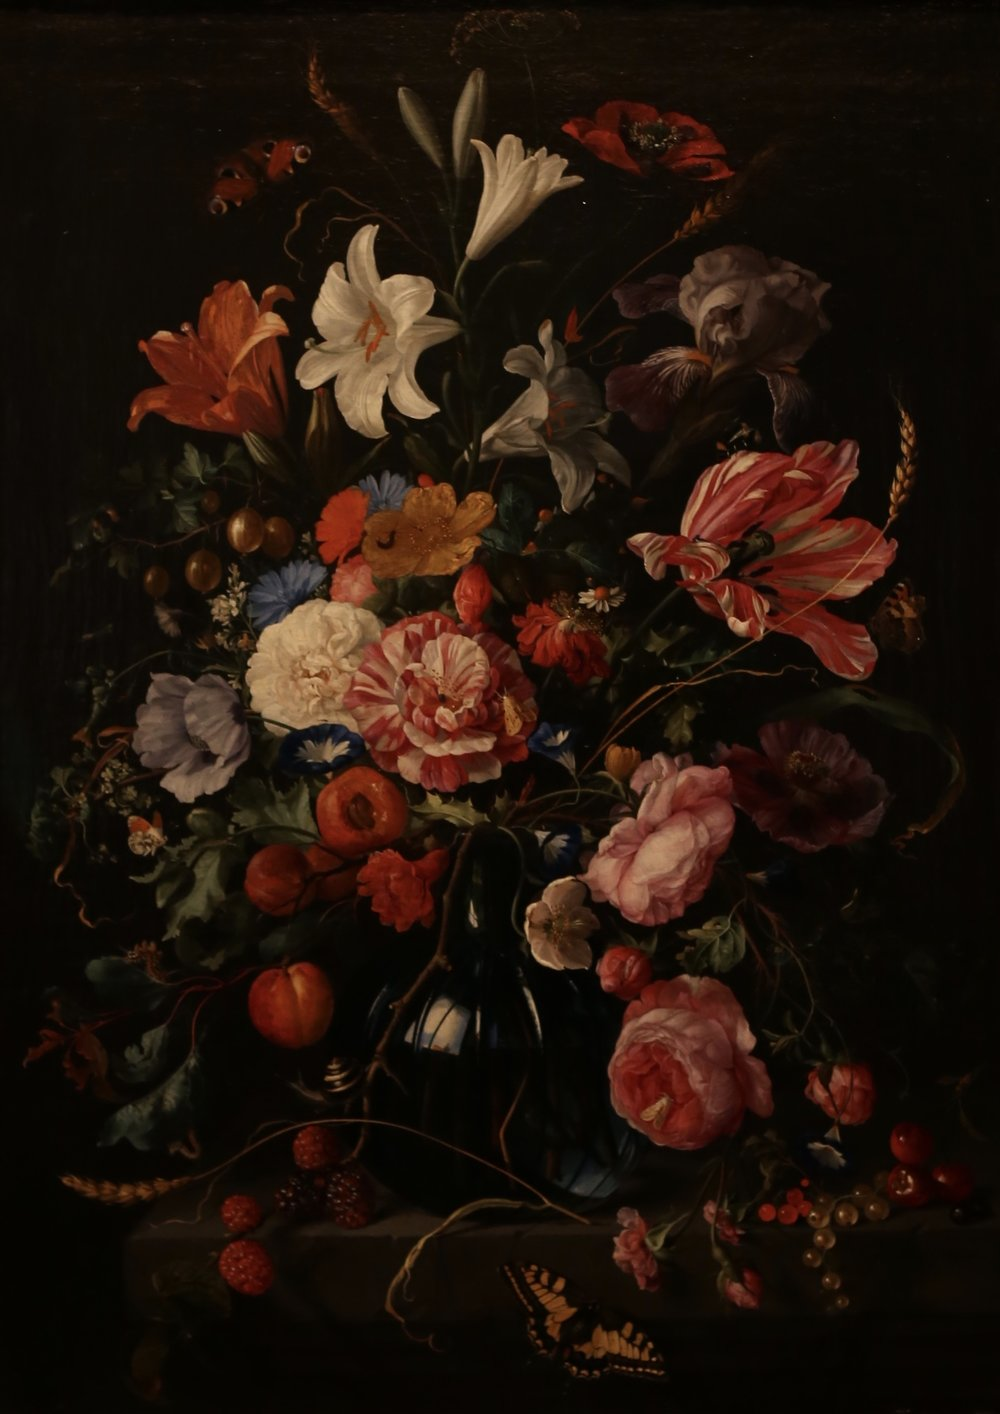 Vase of Flowers by Jan Davidzs de Heem.